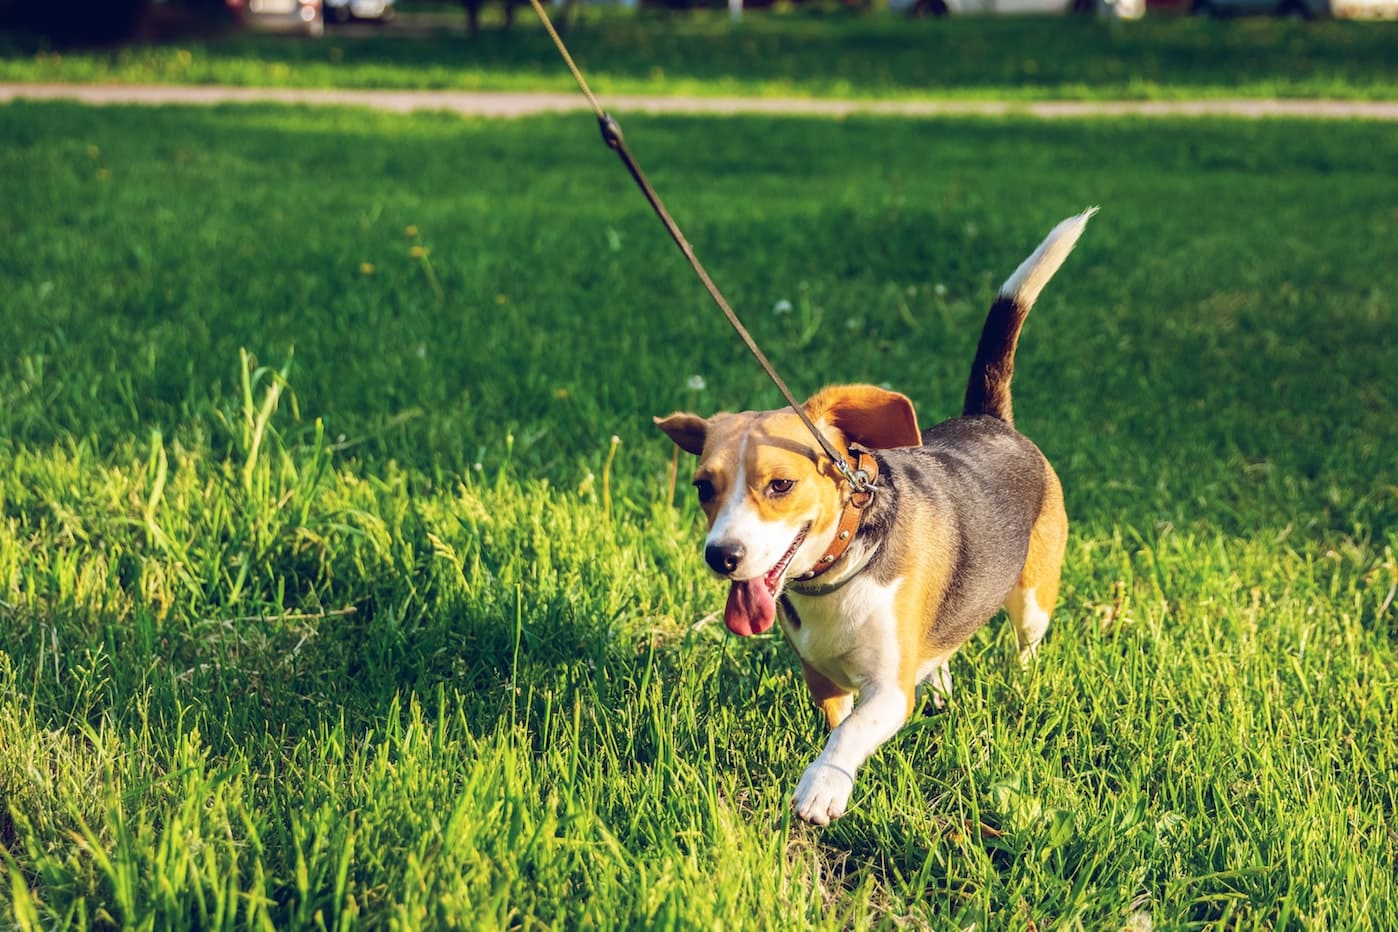 Happy dog on leash running through grass